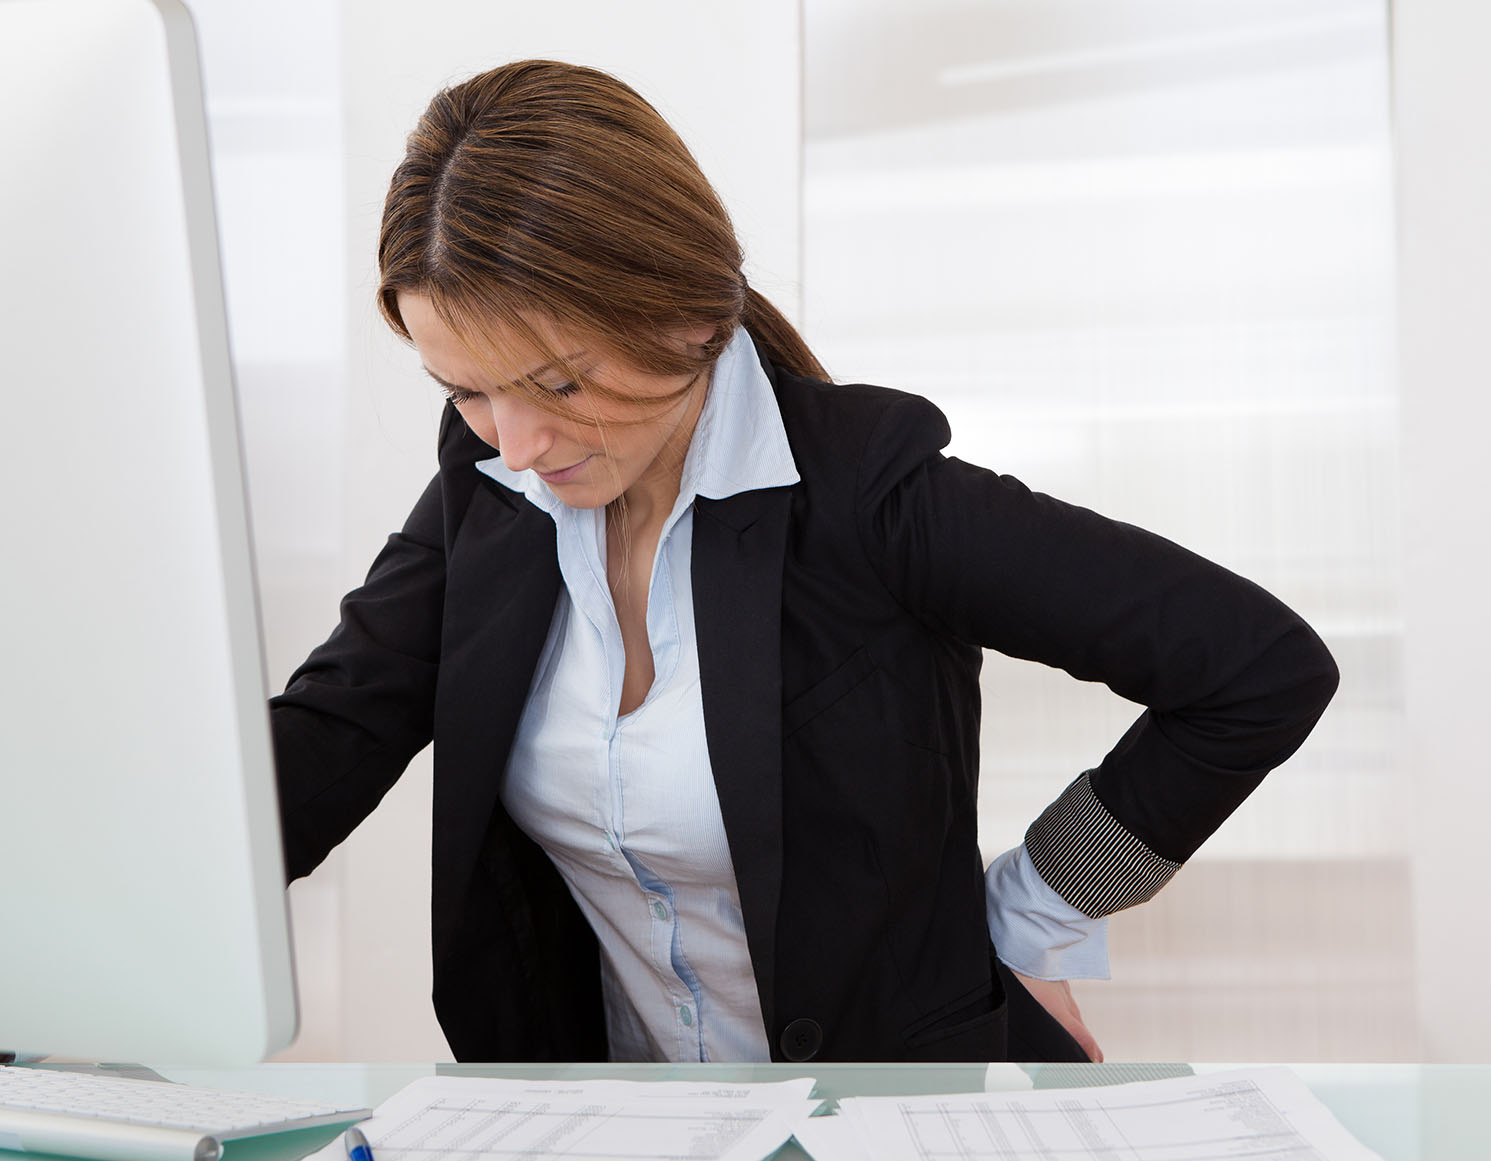 Woman with low back pain at work